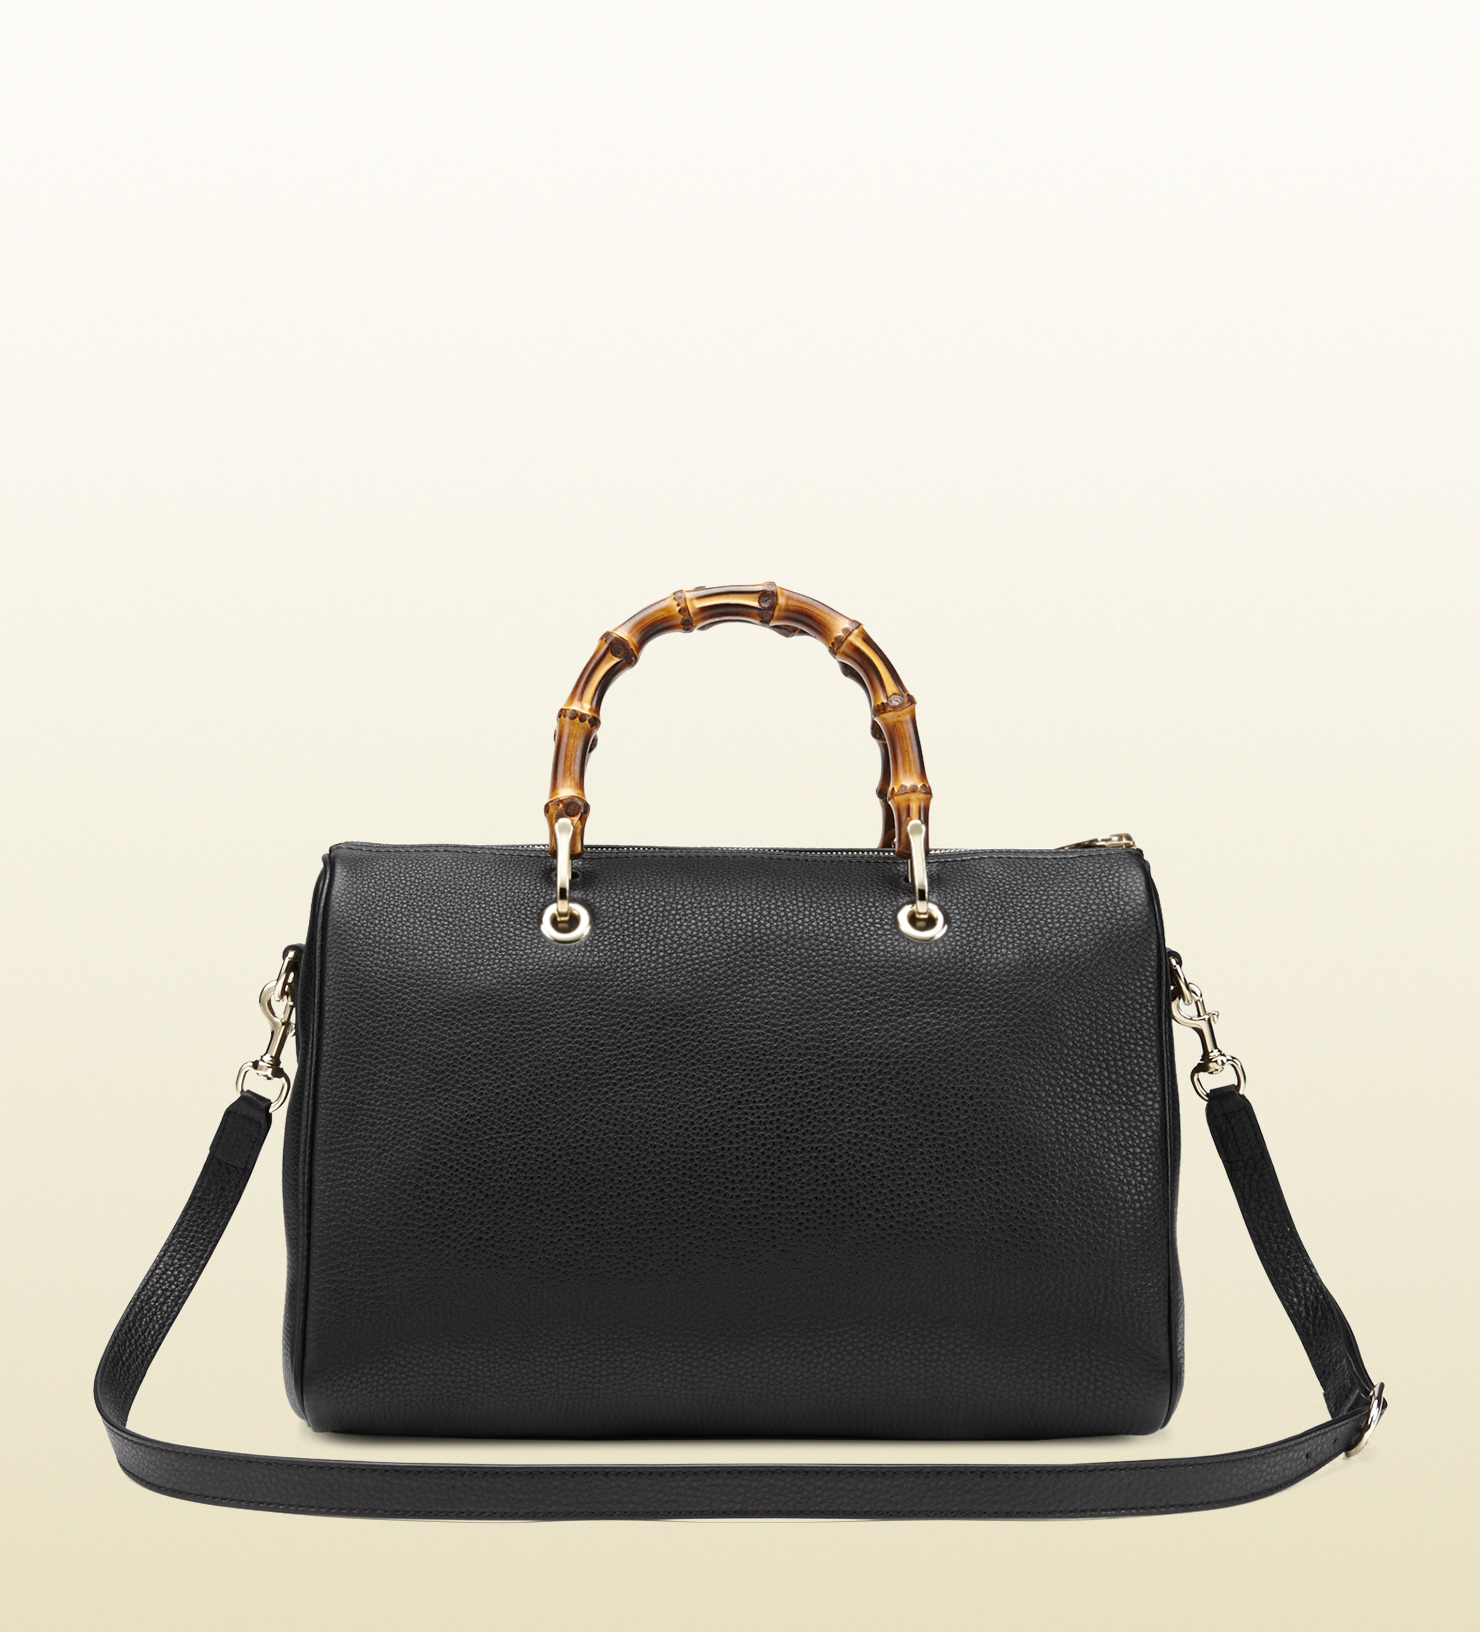 gucci bamboo shopper leather boston bag in black bamboo lyst. Black Bedroom Furniture Sets. Home Design Ideas